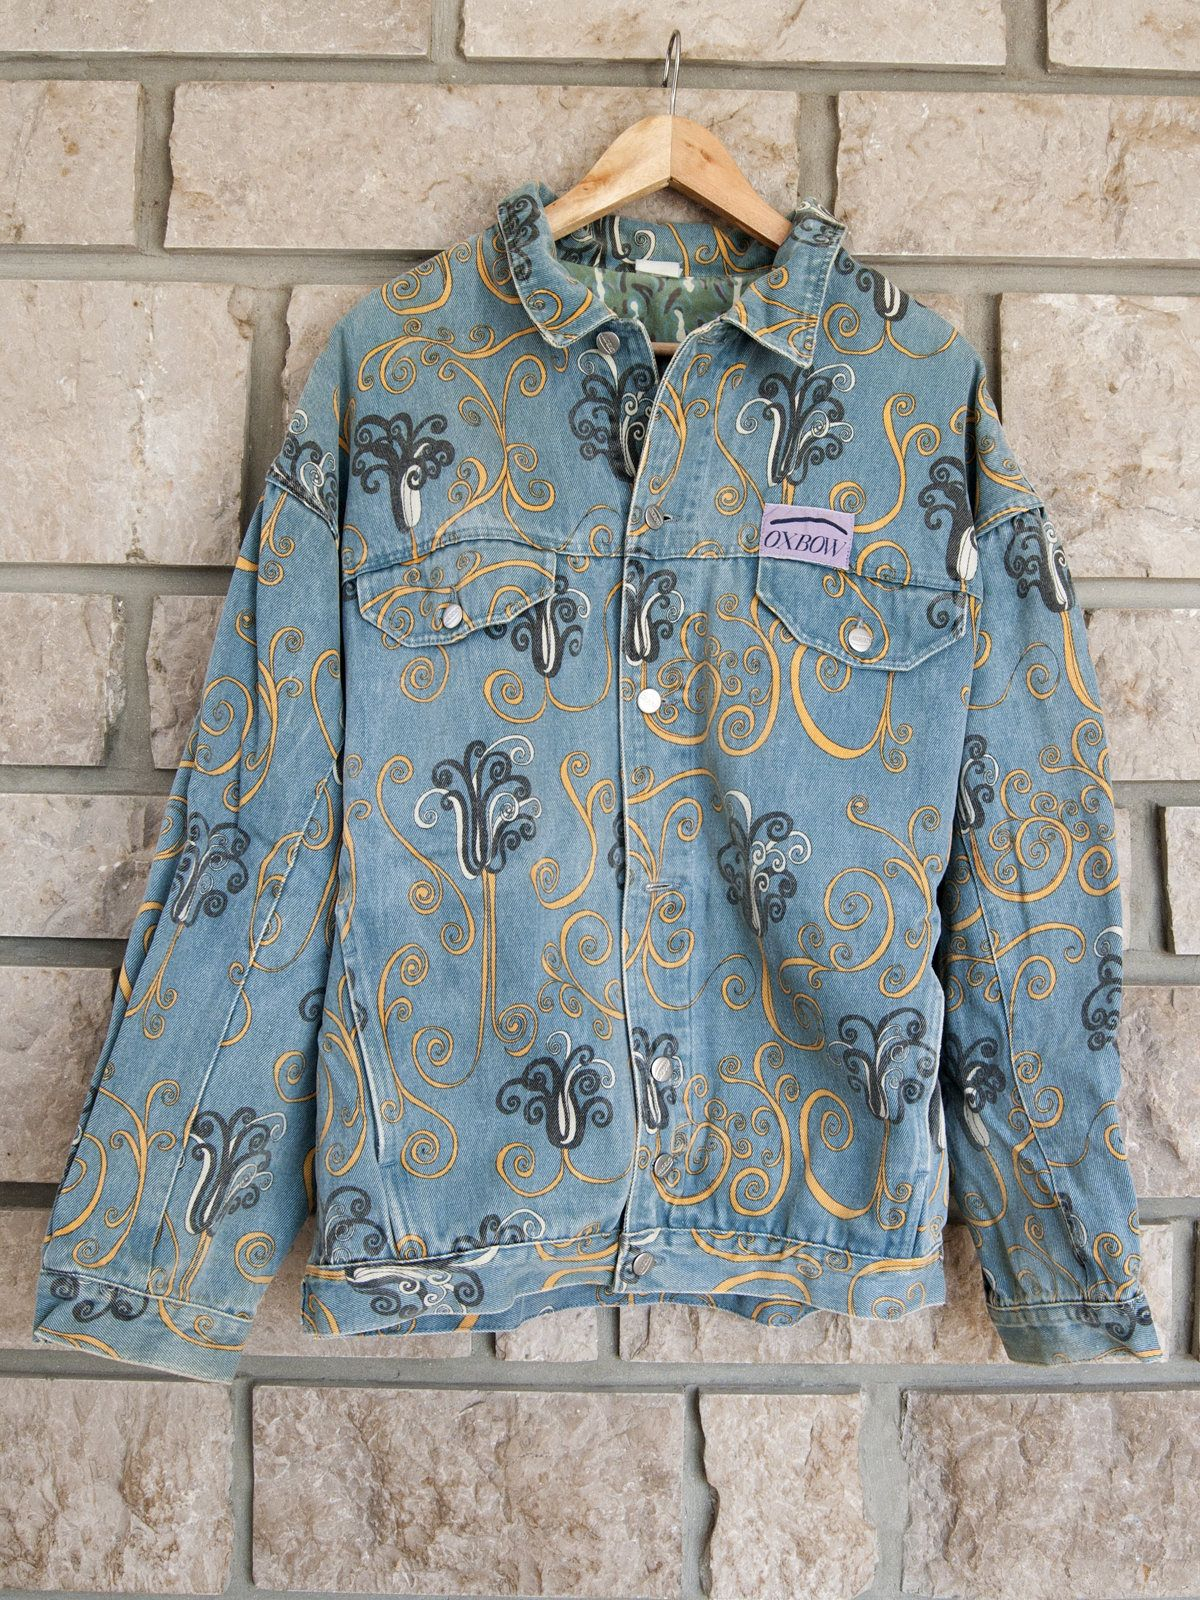 b659850f7c1 Vintage denim jacket for men from the Oxbow brand. This psychedelic pattern  jacket is so 90s! 100% cotton.  denimjacket  denim  jeanjacket  jean ...